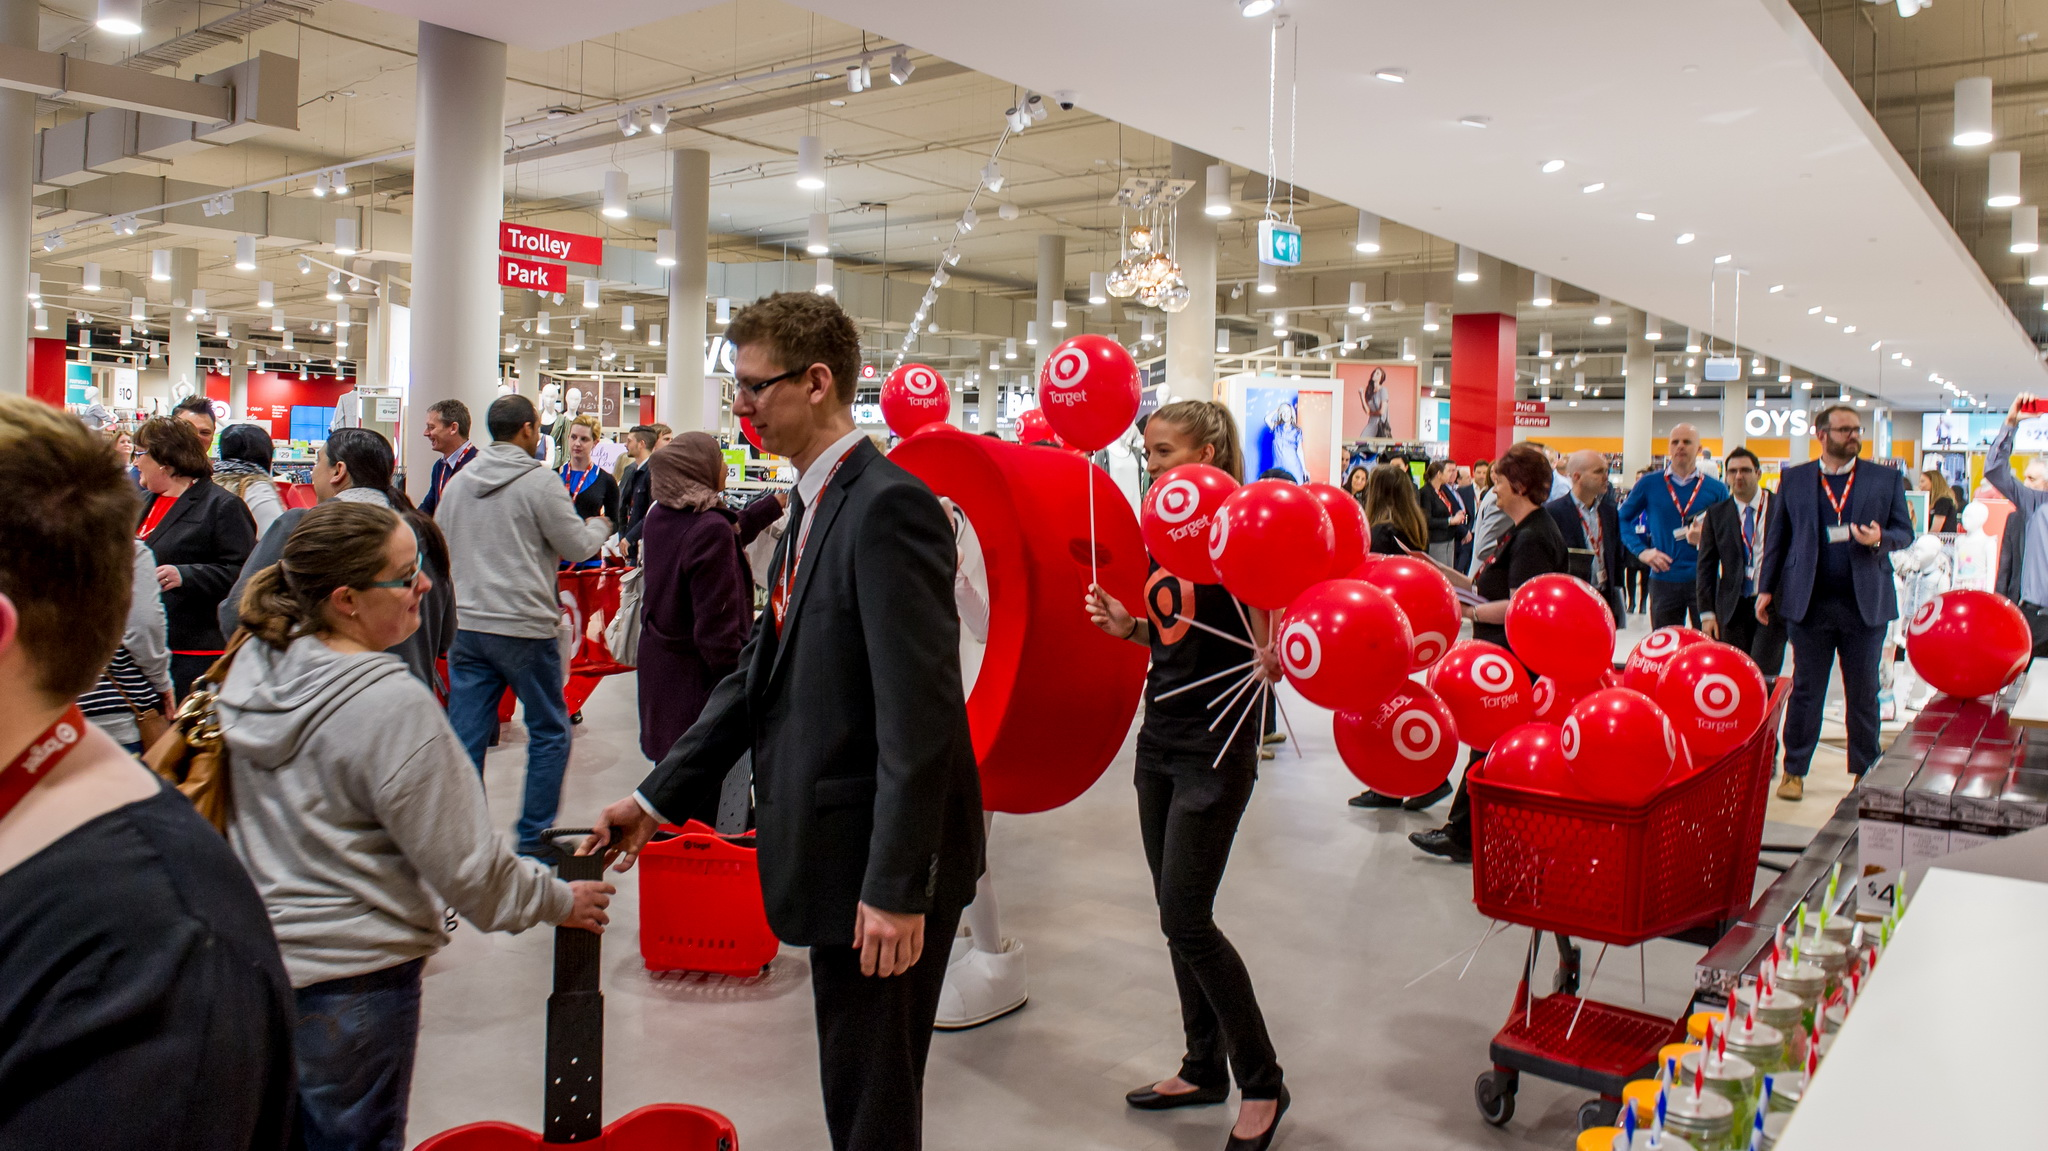 New target store opening pacific werribee shopping for New anthropologie stores opening 2016